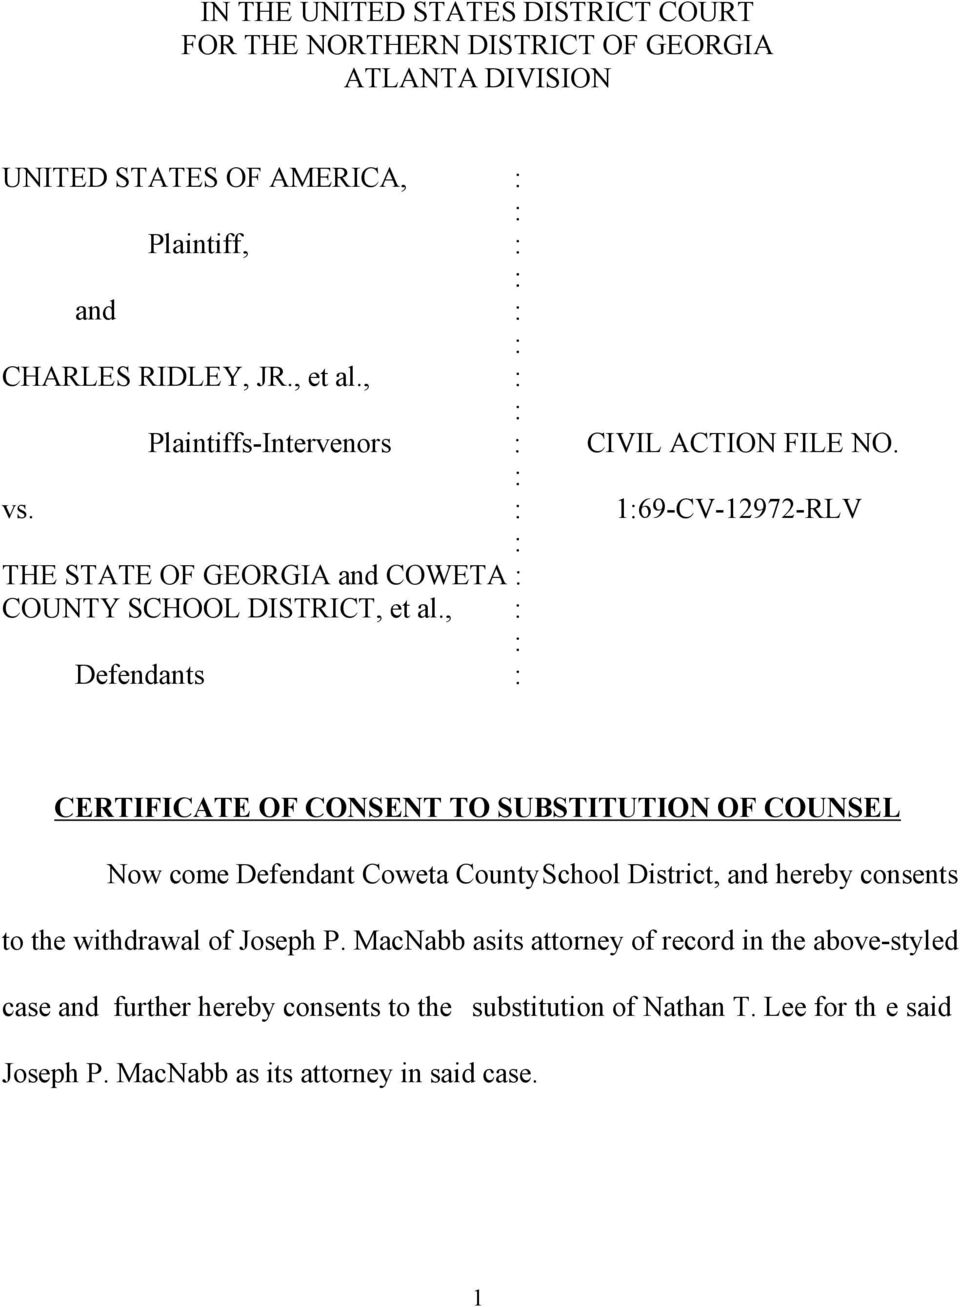 , Defendants CERTIFICATE OF CONSENT TO SUBSTITUTION OF COUNSEL Now come Defendant Coweta County School District, and hereby consents to the withdrawal of